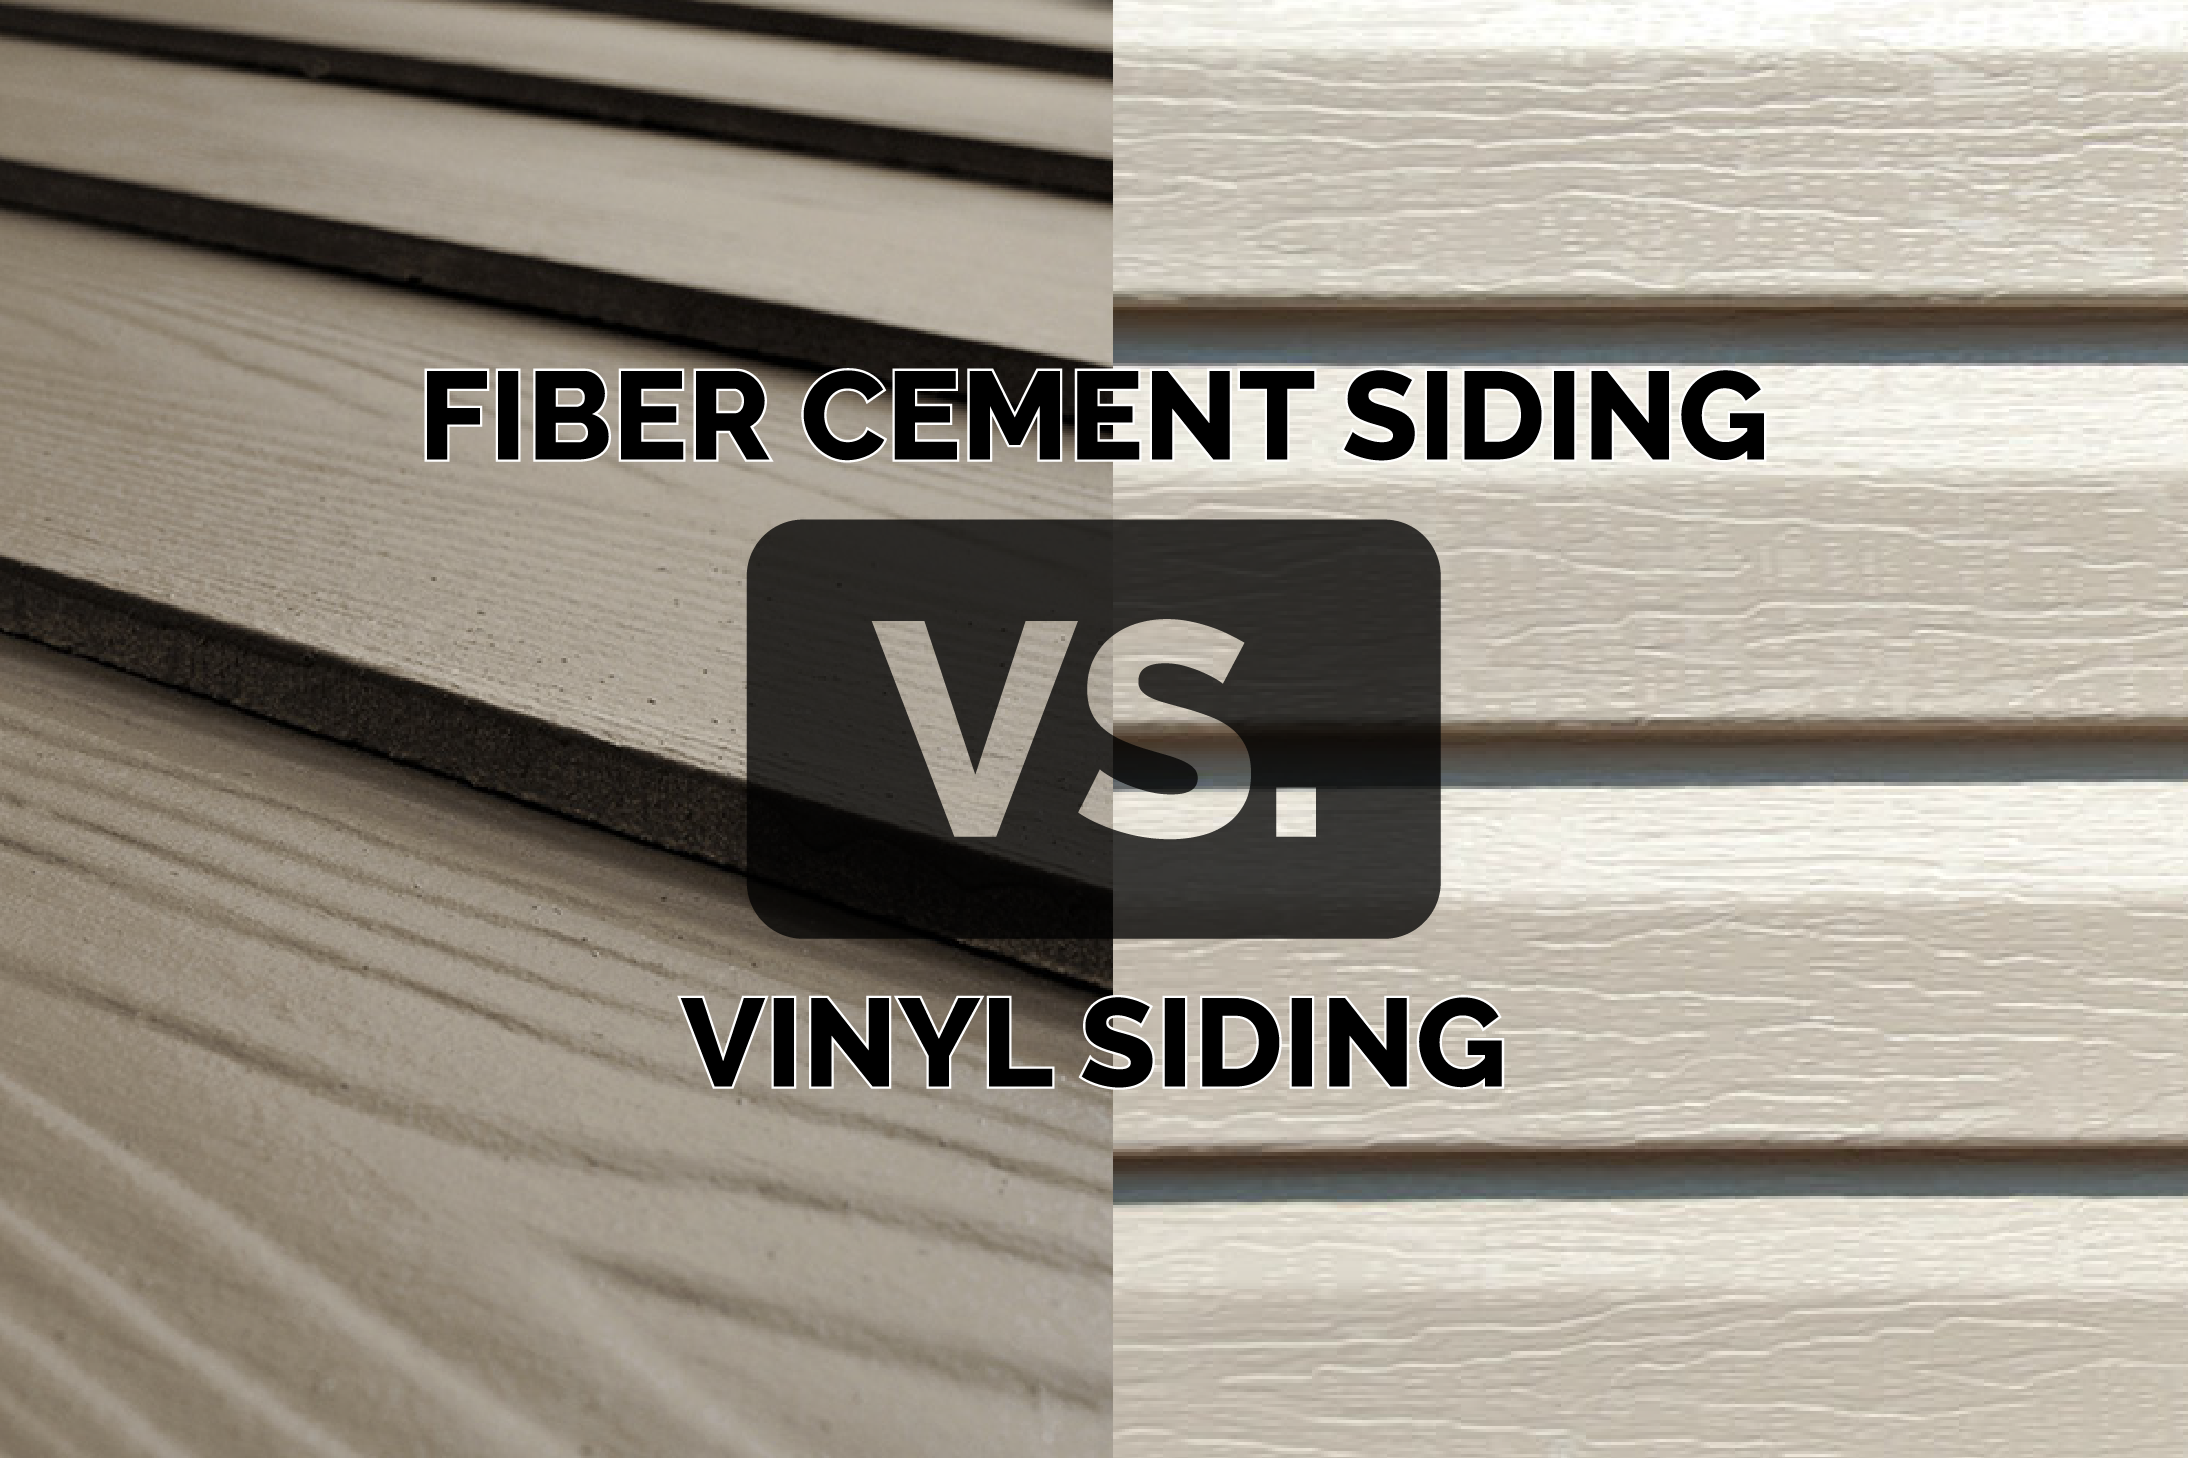 fiber cement vs vinyl siding which is better for